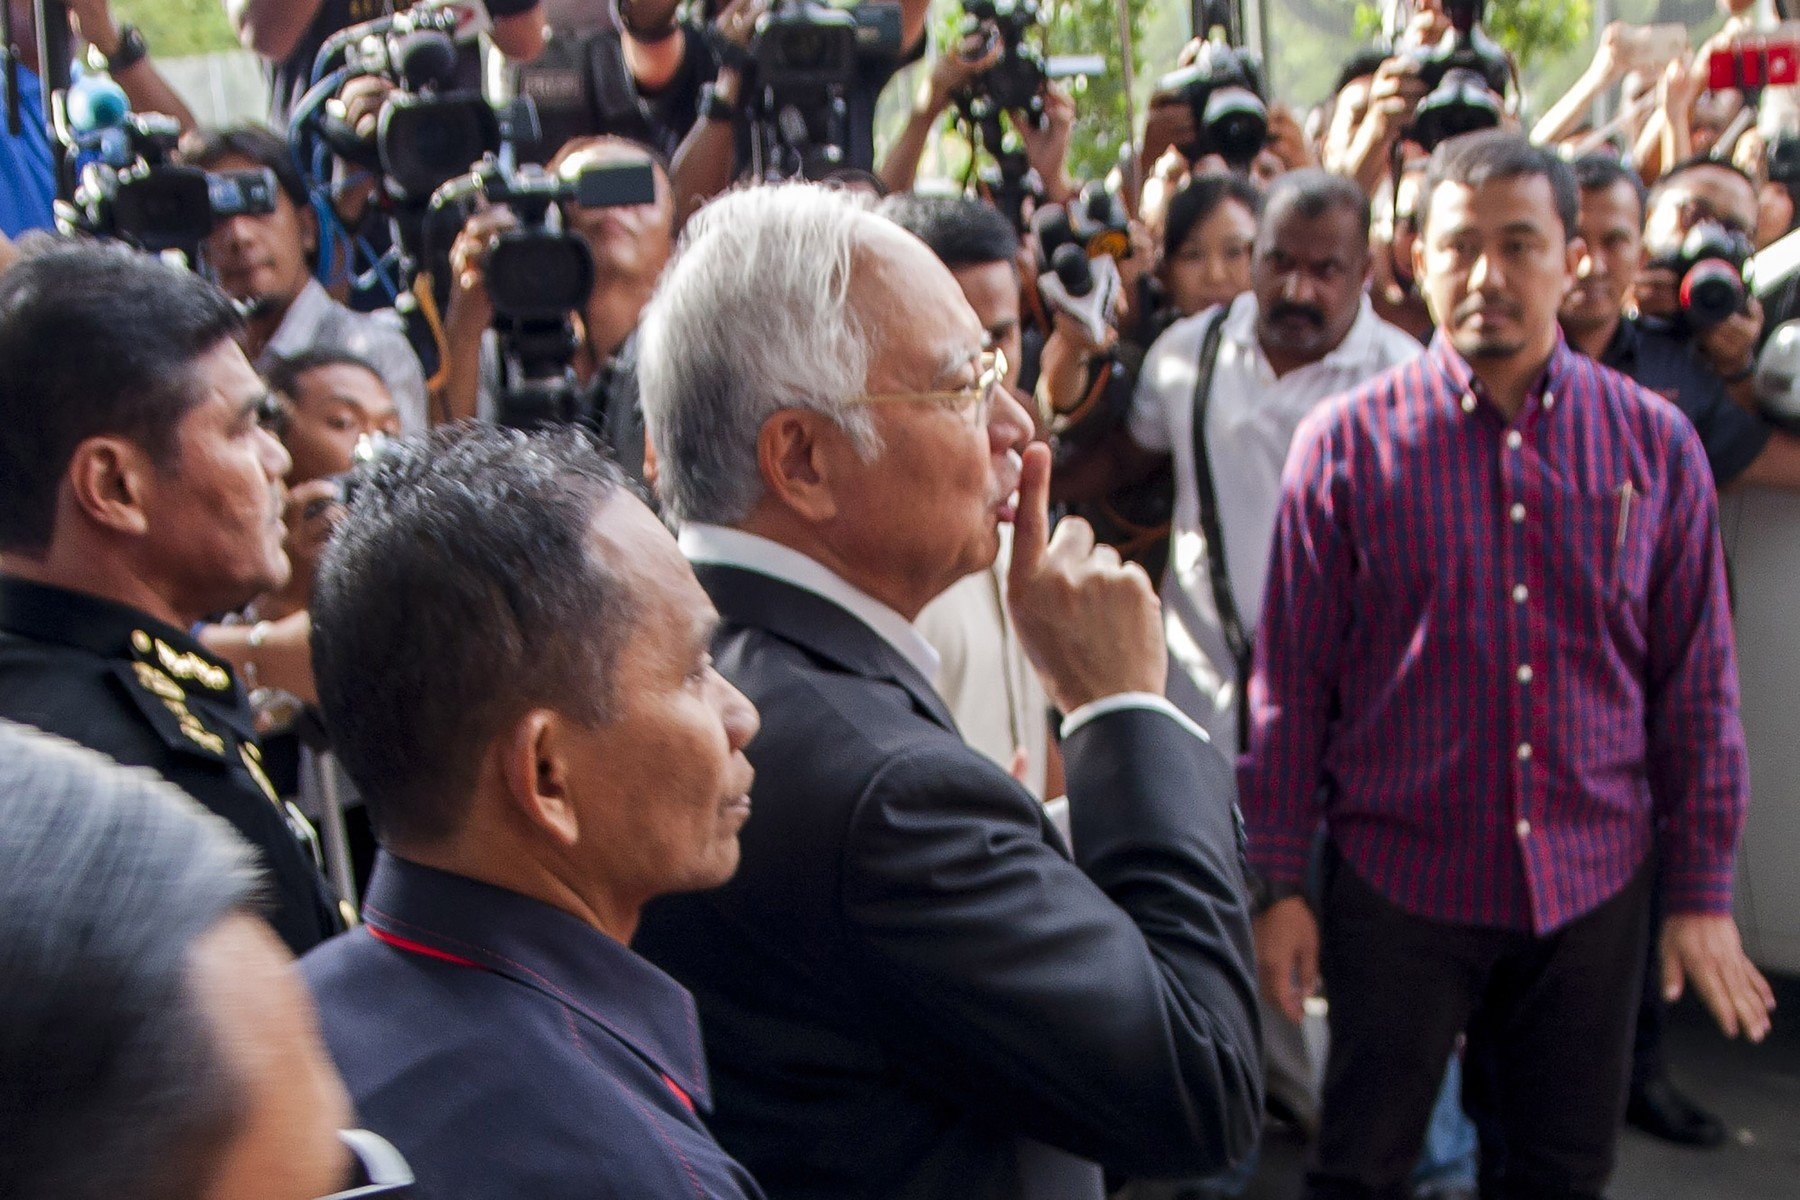 May 24, 2018 - Kuala Lumpur, Malaysia - The former Malaysia prime minister, Najib Razak seen with a quiet hand gesture at the MACC headquarters after gave his second statement about the 1Malaysia Development Bhd...Najib Razak the former Malaysia prime minister has summoned by the Malaysia Anti Corruption Commission (MACC) to give a statement about 1Malaysian Development Bhd (1MDB) since the Prime Minister's Office had announced to setting up of the 1MDB Investigation Task Force., Image: 372850452, License: Rights-managed, Restrictions: , Model Release: no, Credit line: Profimedia, Zuma Press - News